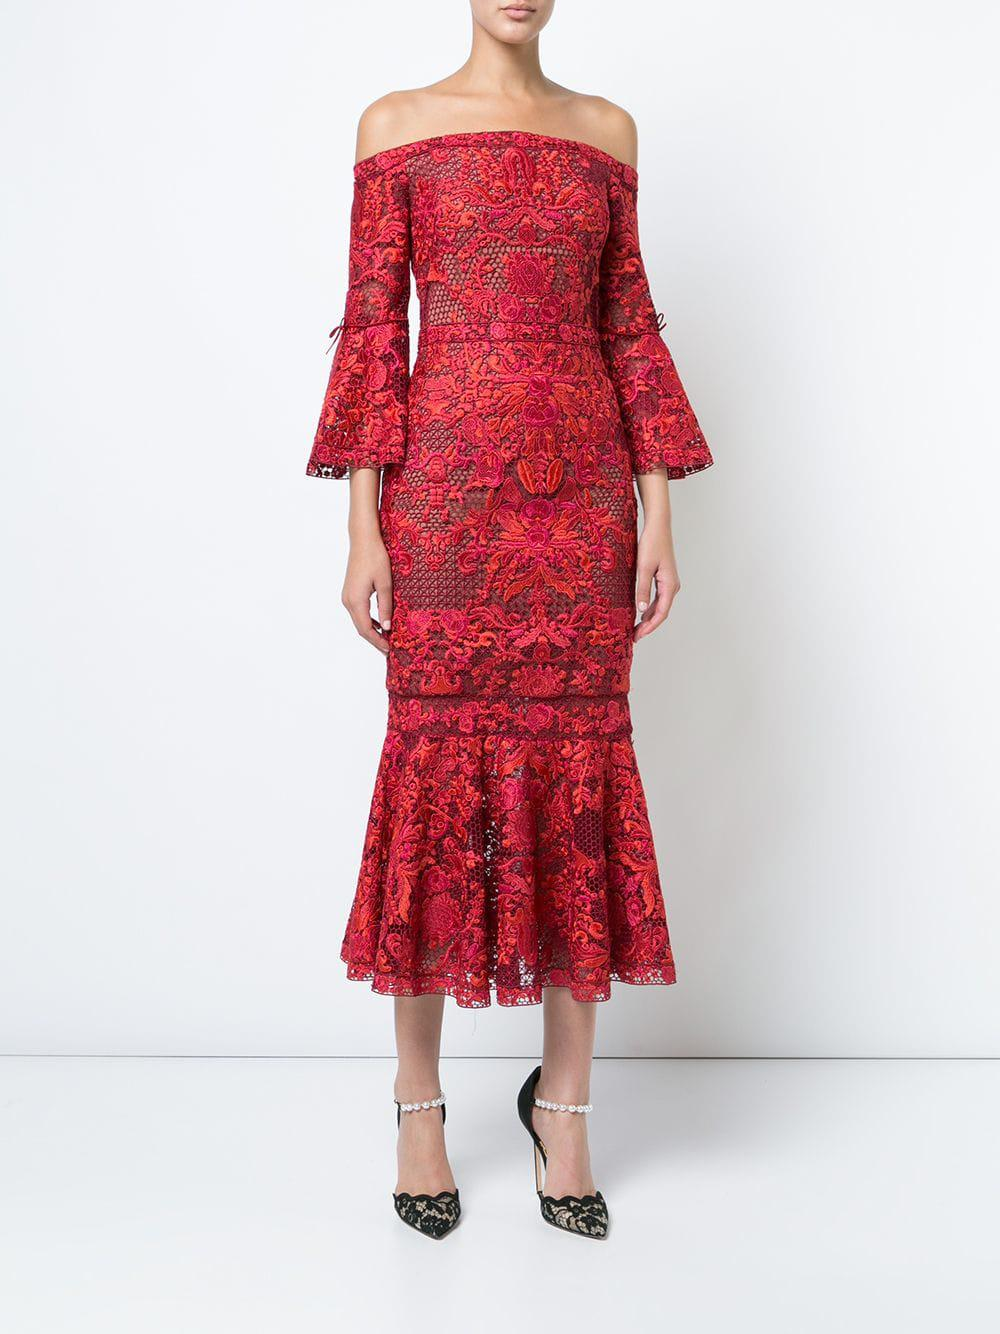 55b00f5e42c Lyst - Marchesa notte Embroidered Lace Off The Shoulder Dress in Red - Save  27%